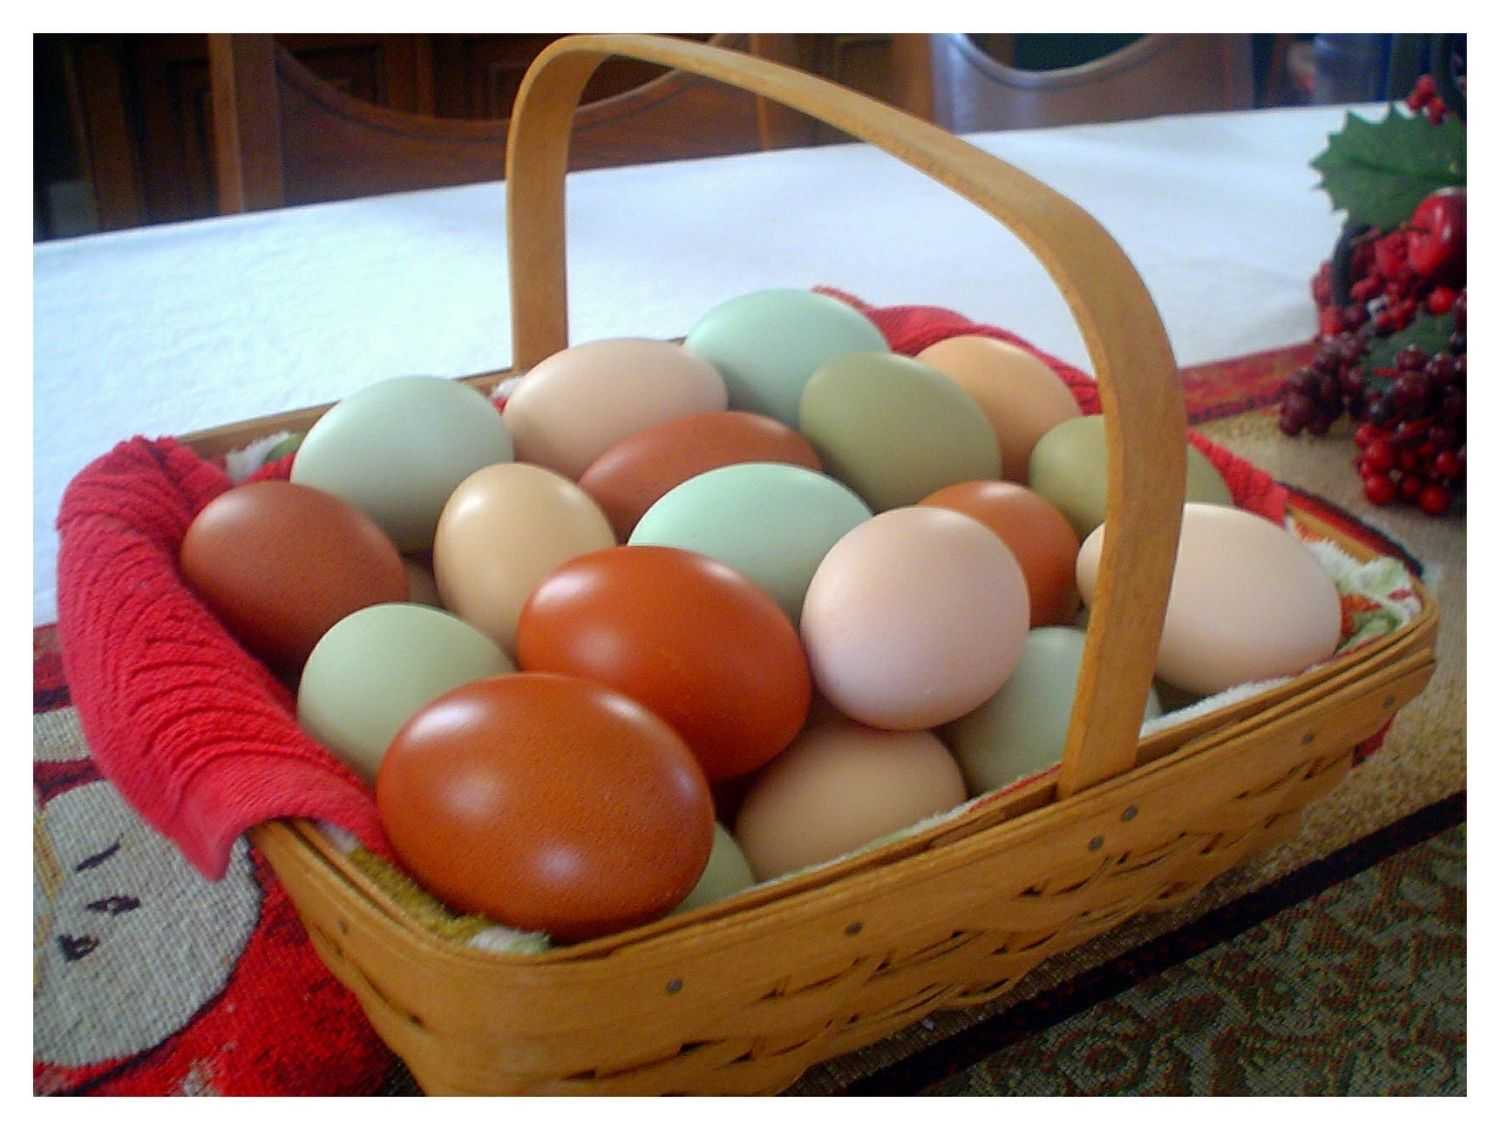 Gardeningmama's photos in Contest #14 Natural Egg Photo Contest  2014 Easter Hatch-a-long!